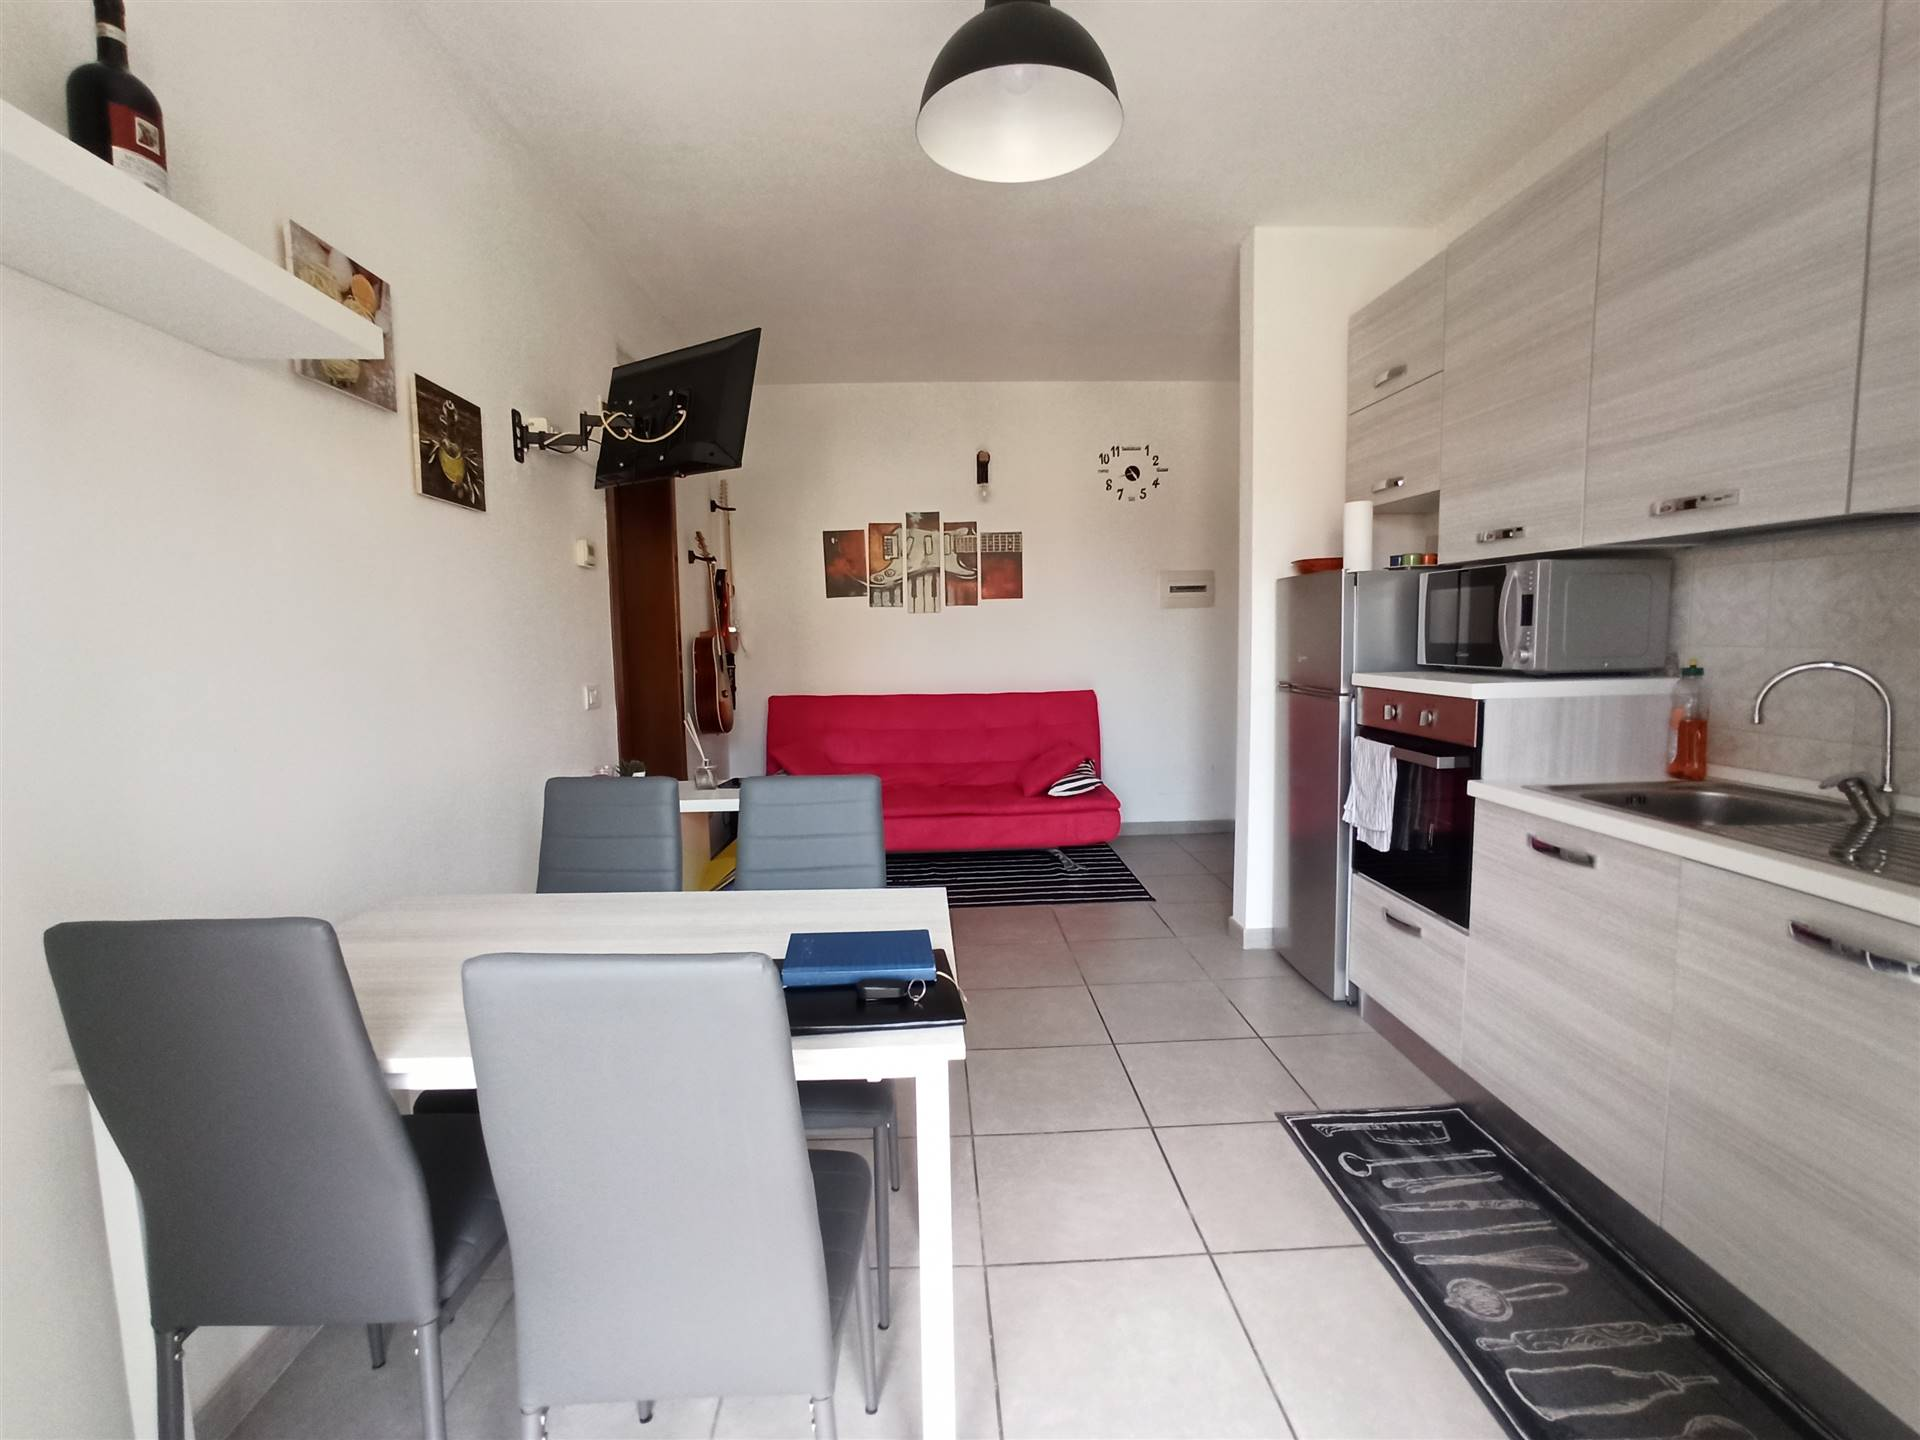 LA VILLA, CAMPI BISENZIO, Apartment for sale, Excellent Condition, Heating Individual heating system, Energetic class: G, placed at 1° on 2, composed